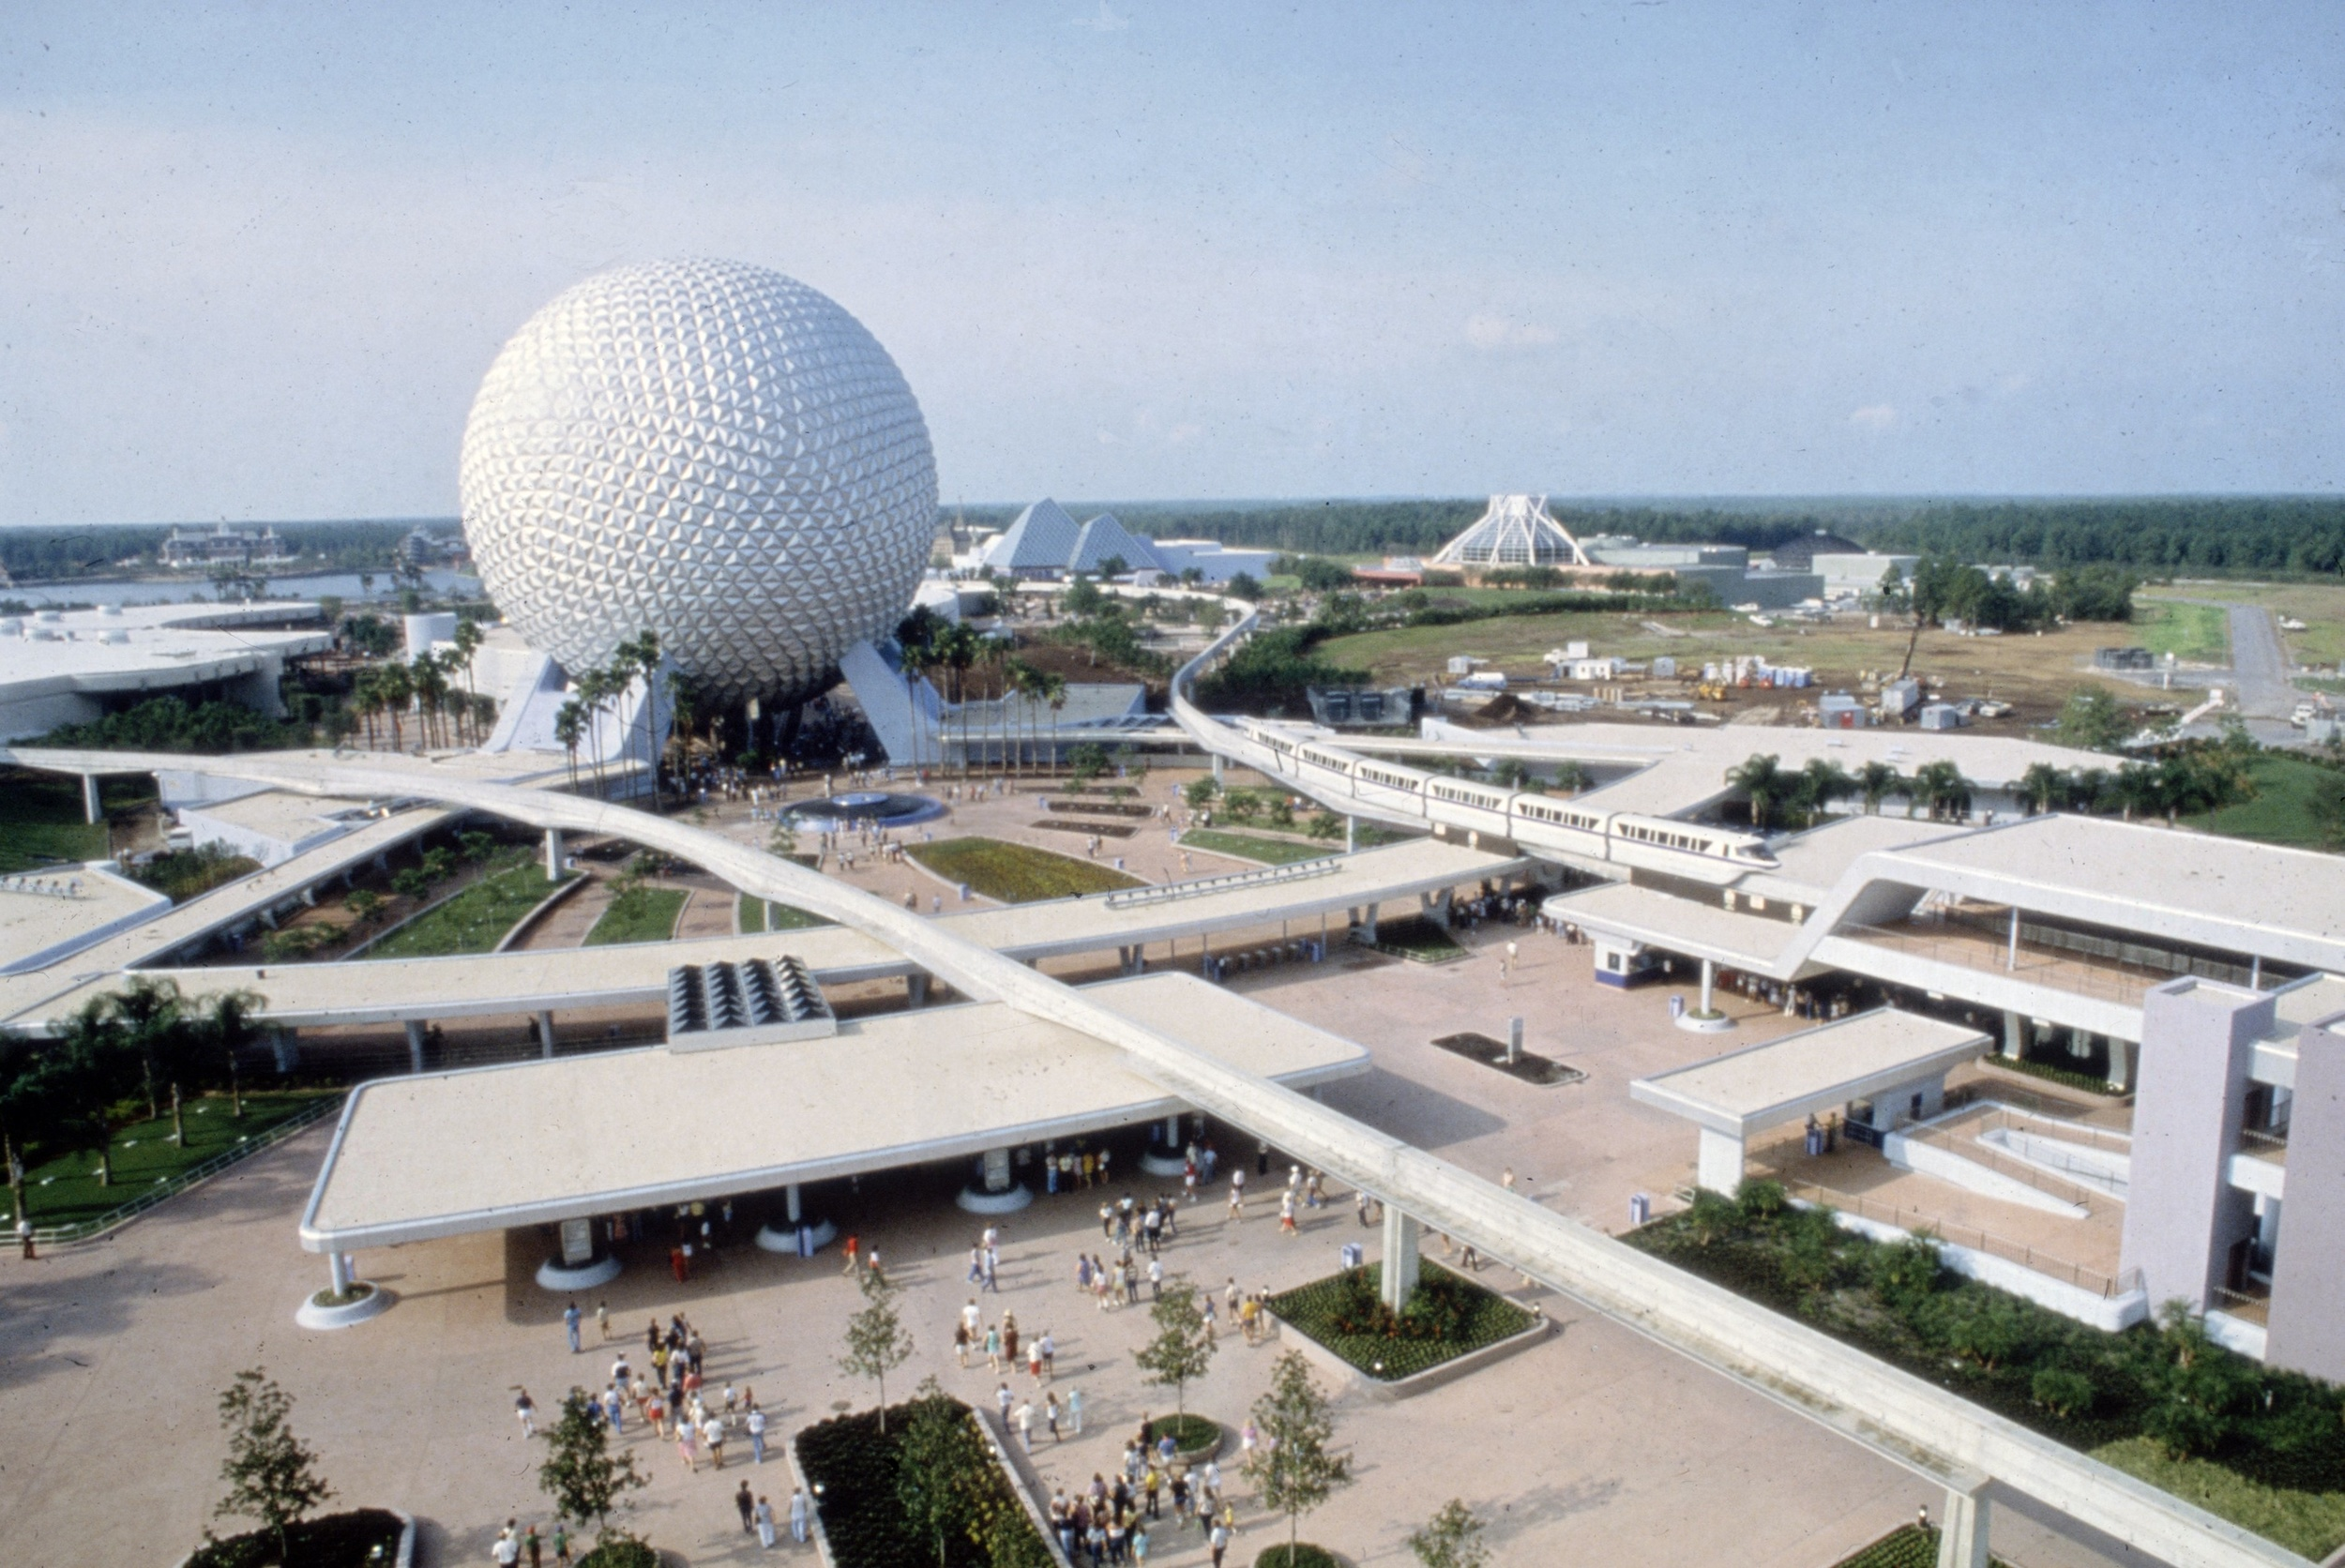 A view of the entrance to Epcot Center, curved lines, silver and white all over.